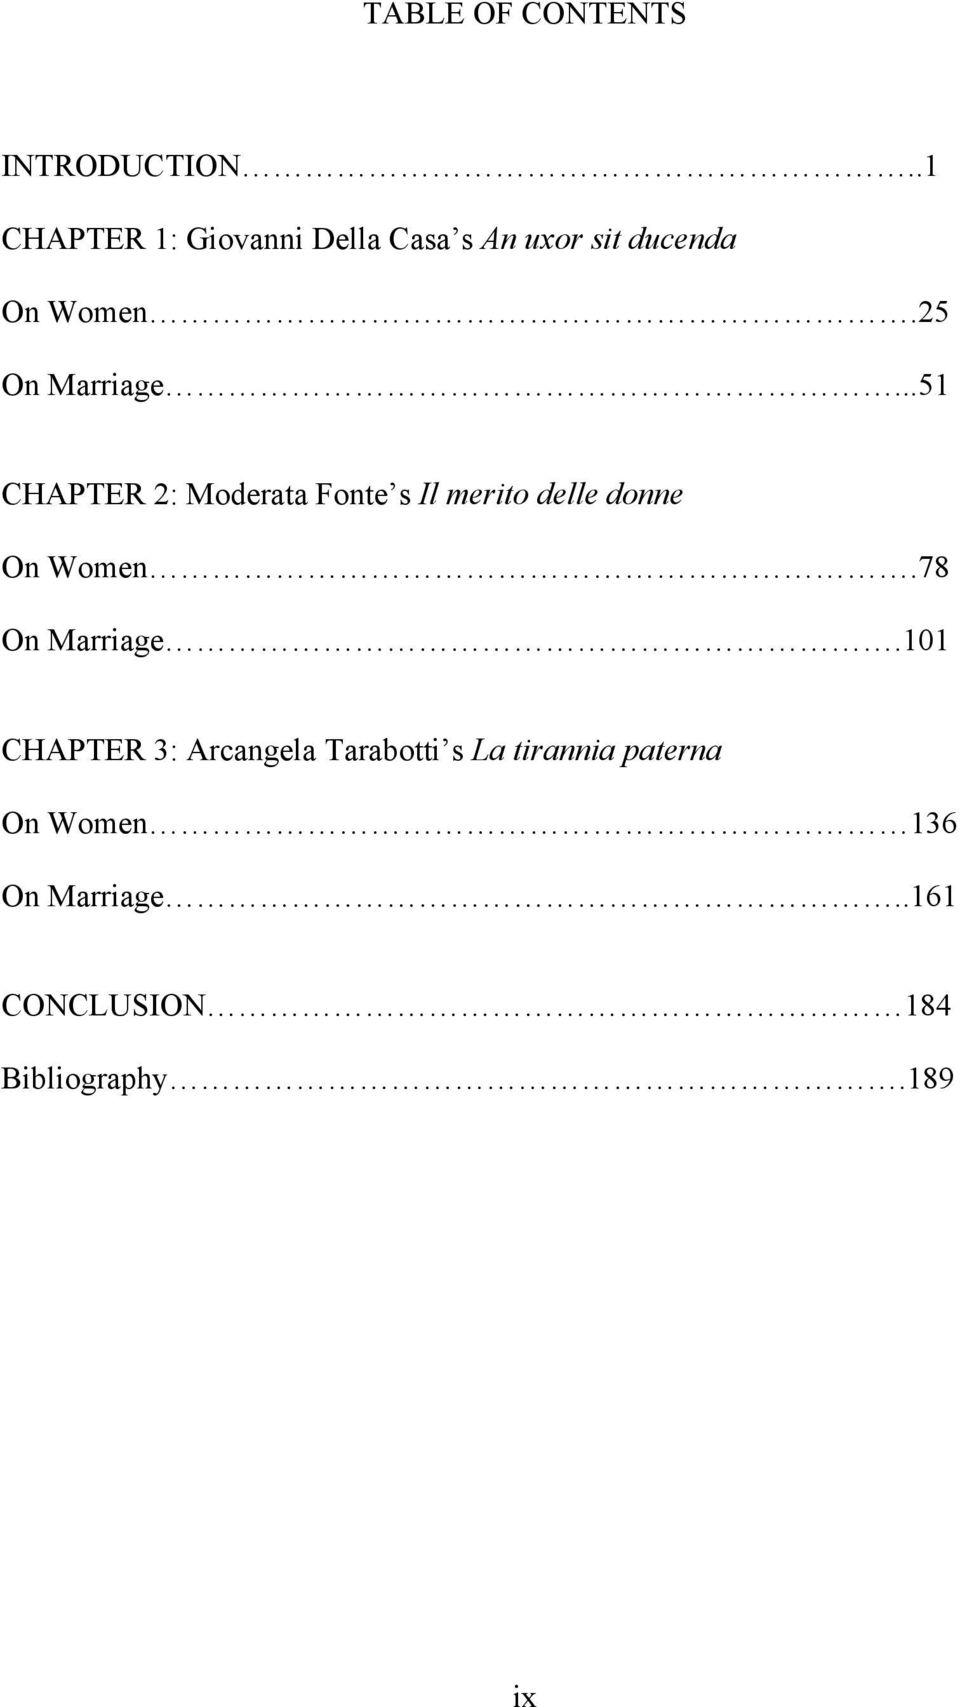 25 On Marriage...51 CHAPTER 2: Moderata Fonte s Il merito delle donne On Women.